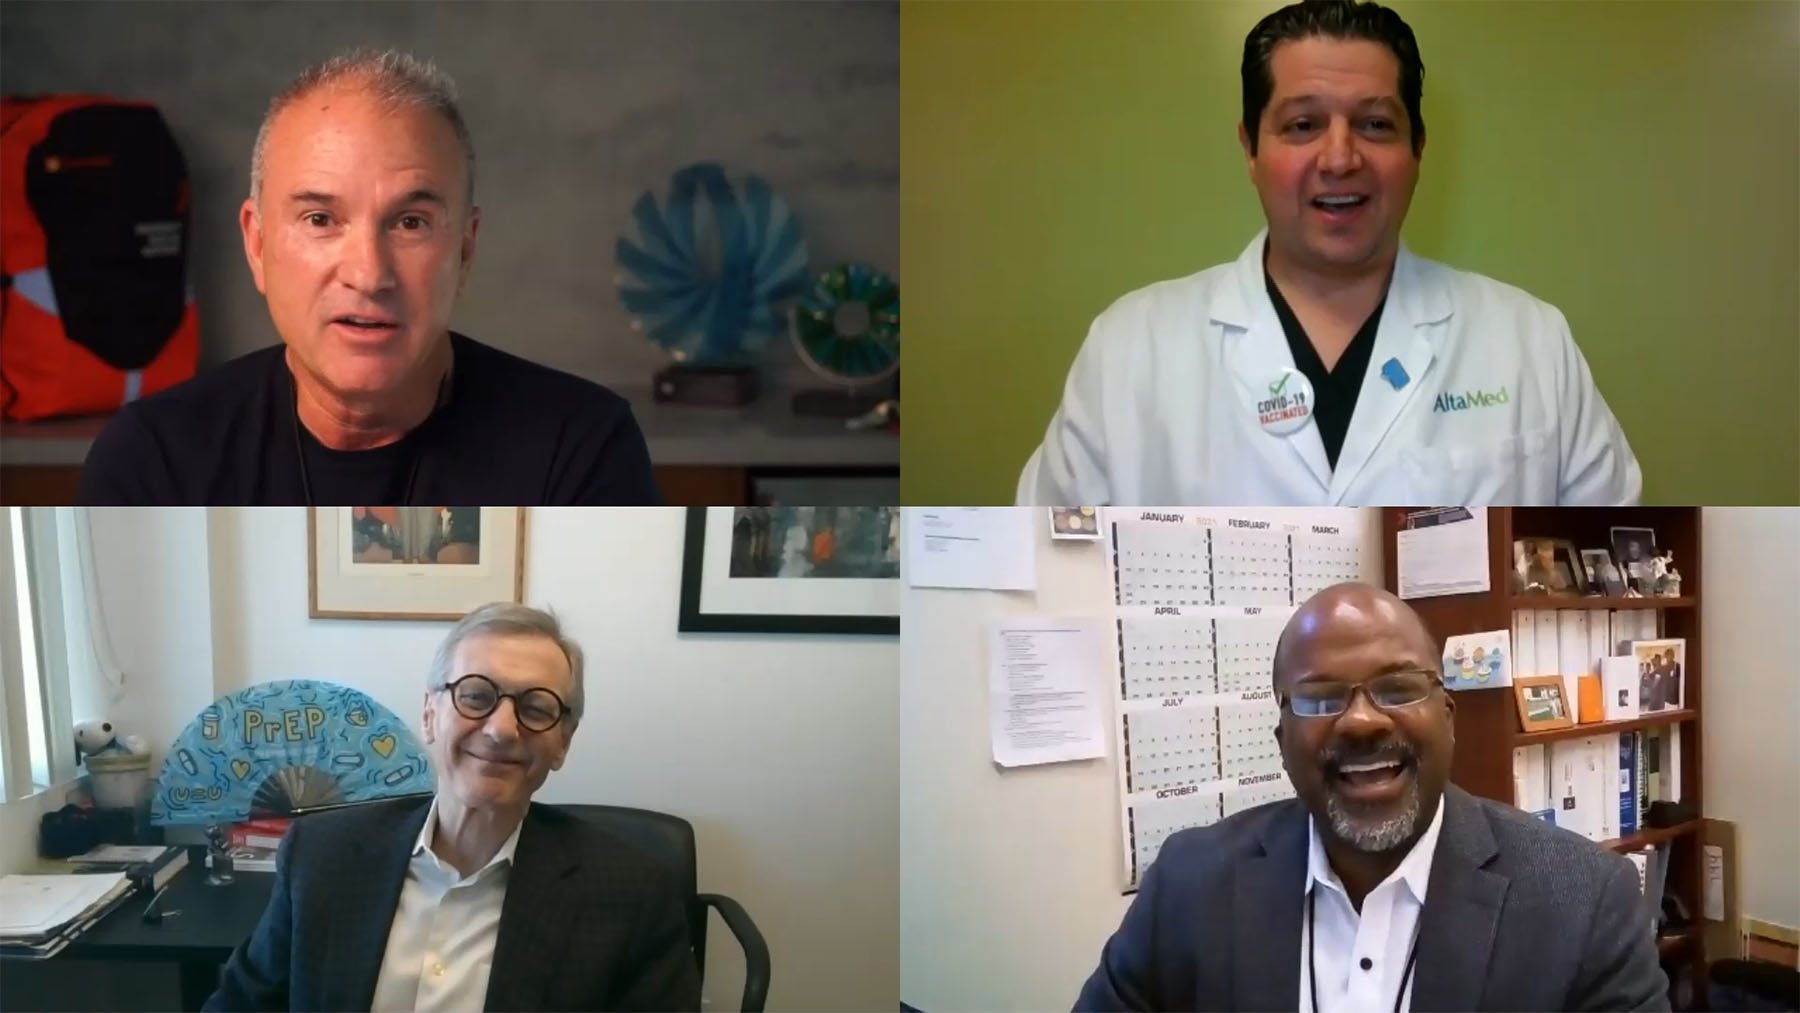 (clockwise) Direct Relief's Thomas Tighe,  AltaMed's Dr. Ilan Shapiro Strygler, L.A. L.G.B.T Center's Dr. Robert Bolan, and T.H.E. Health's Dr. Derrick Butler (Direct Relief)